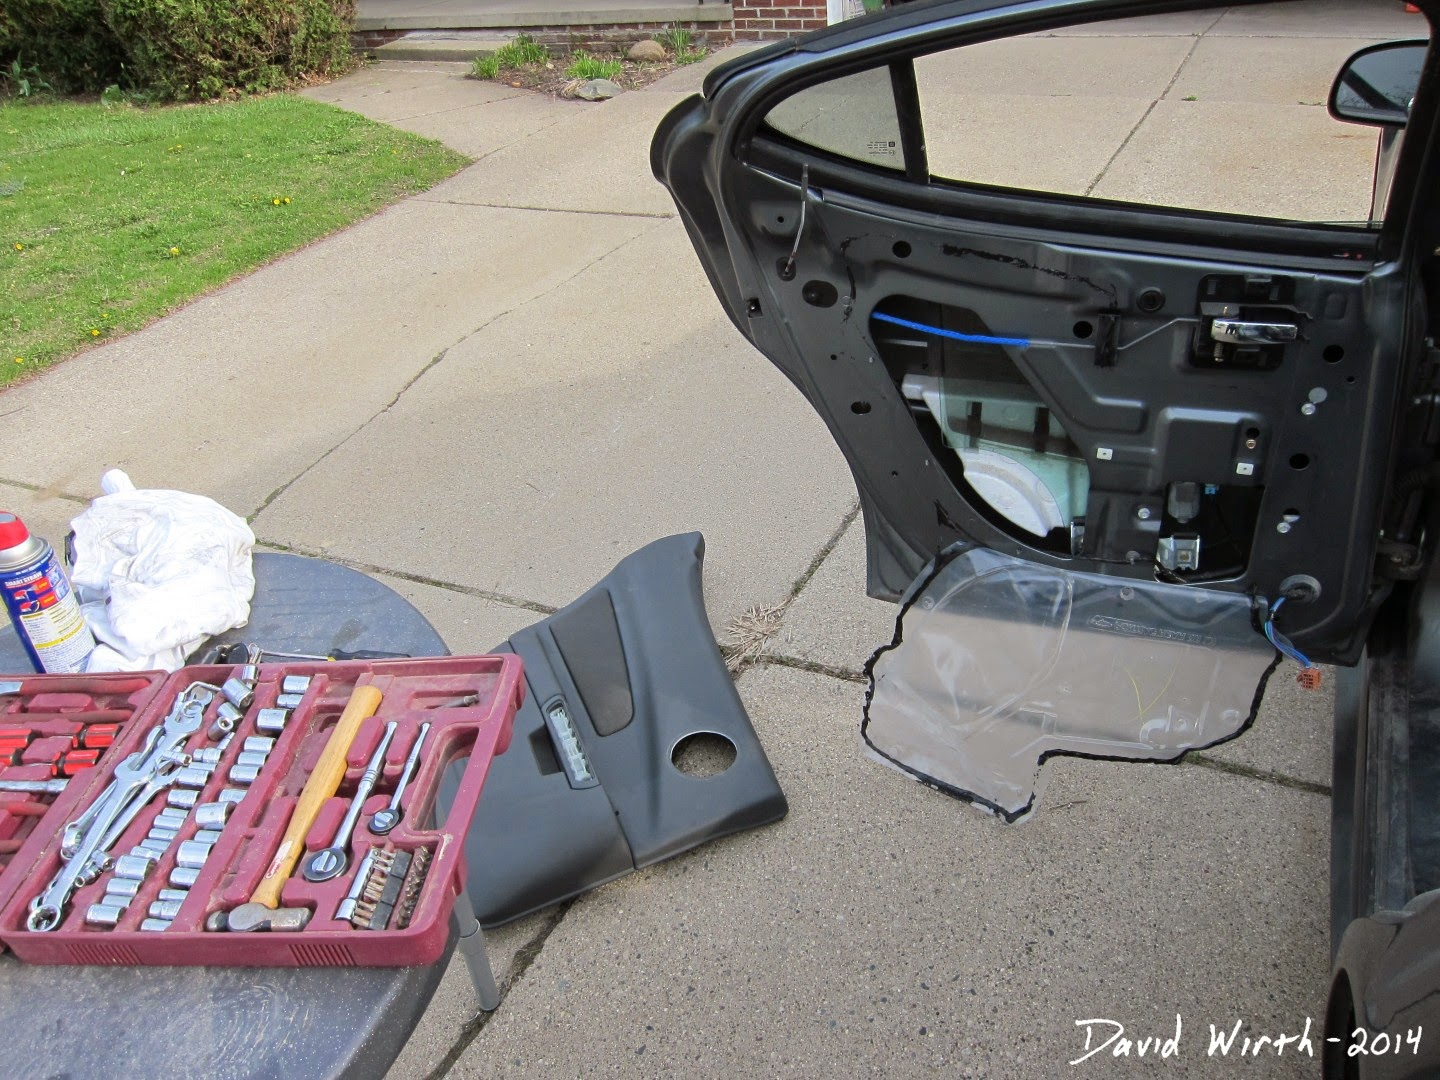 how to fix a broken car window, won't work, motor, regulator